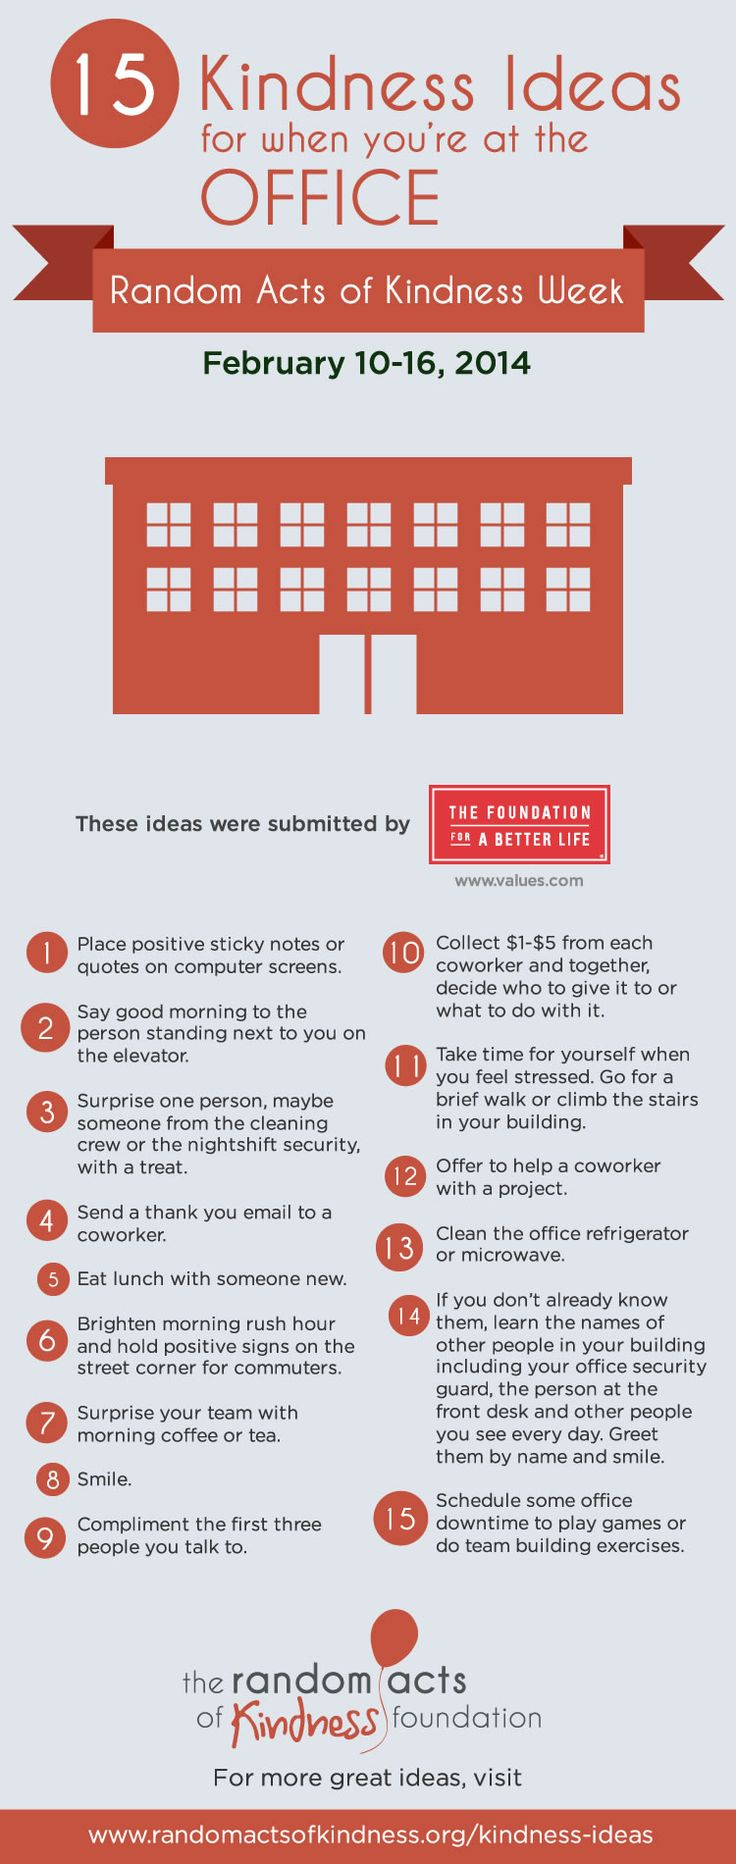 15 Kindness Ideas for when you're at the office #RAKWeek